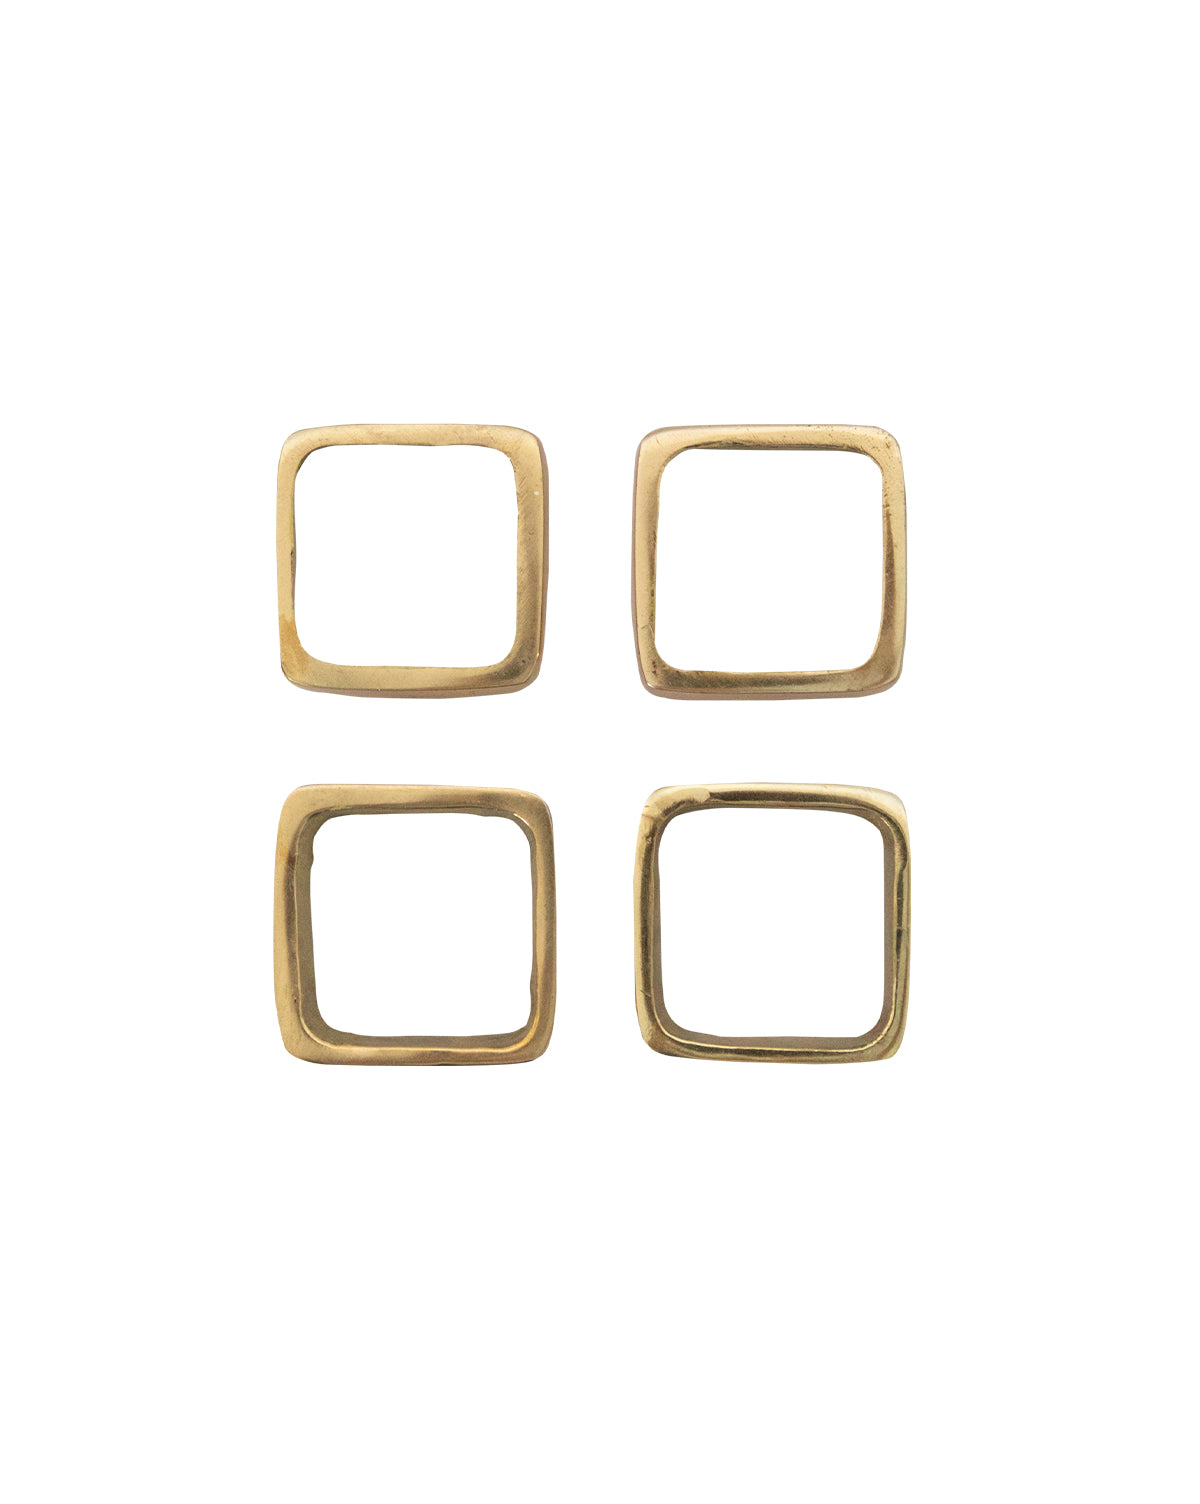 Brass Napkin Rings (Set of 4)